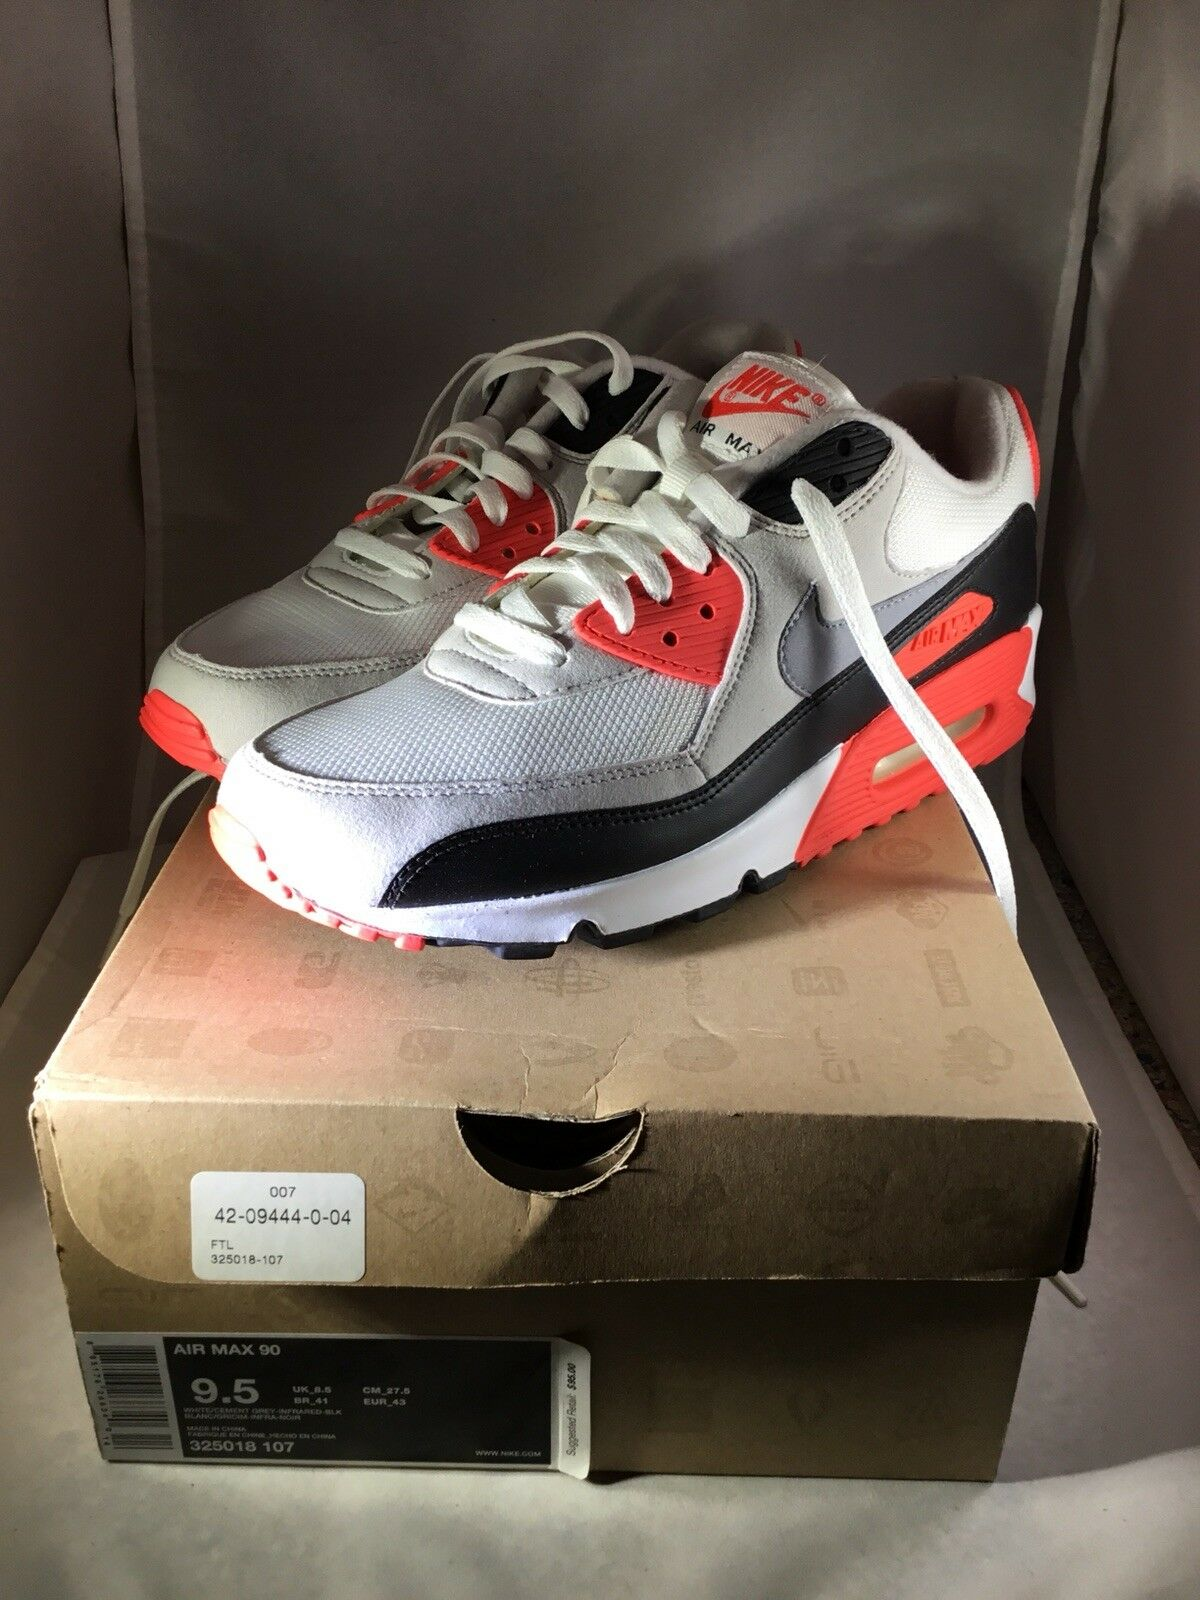 sports shoes a4b78 cc858 ... shopping 2010 cemento nike air max nike 90 cemento blanco gris blanco  infrarrojo negro 325018 107